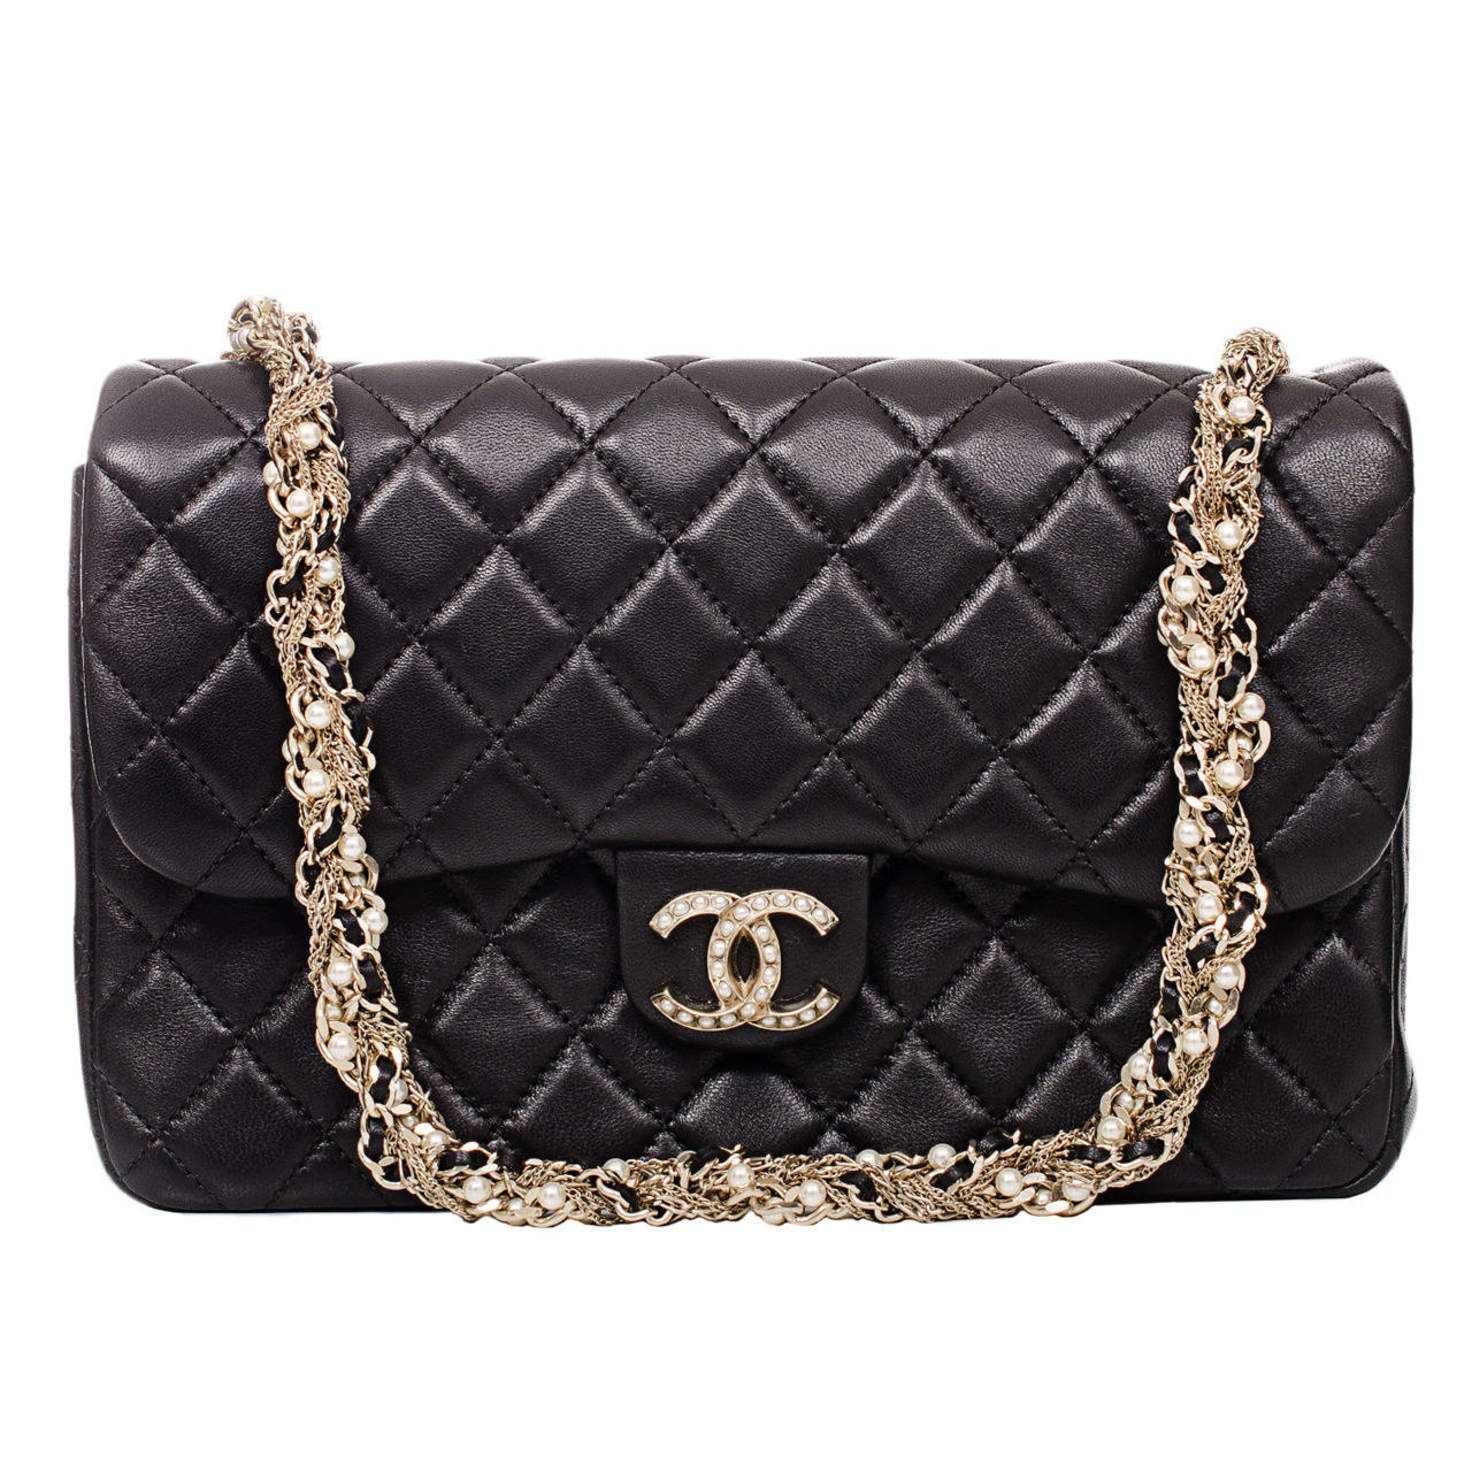 b571f85e964e Chanel Black Lambskin Westminster Pearl Flap Bag | Handbags | Chanel ...